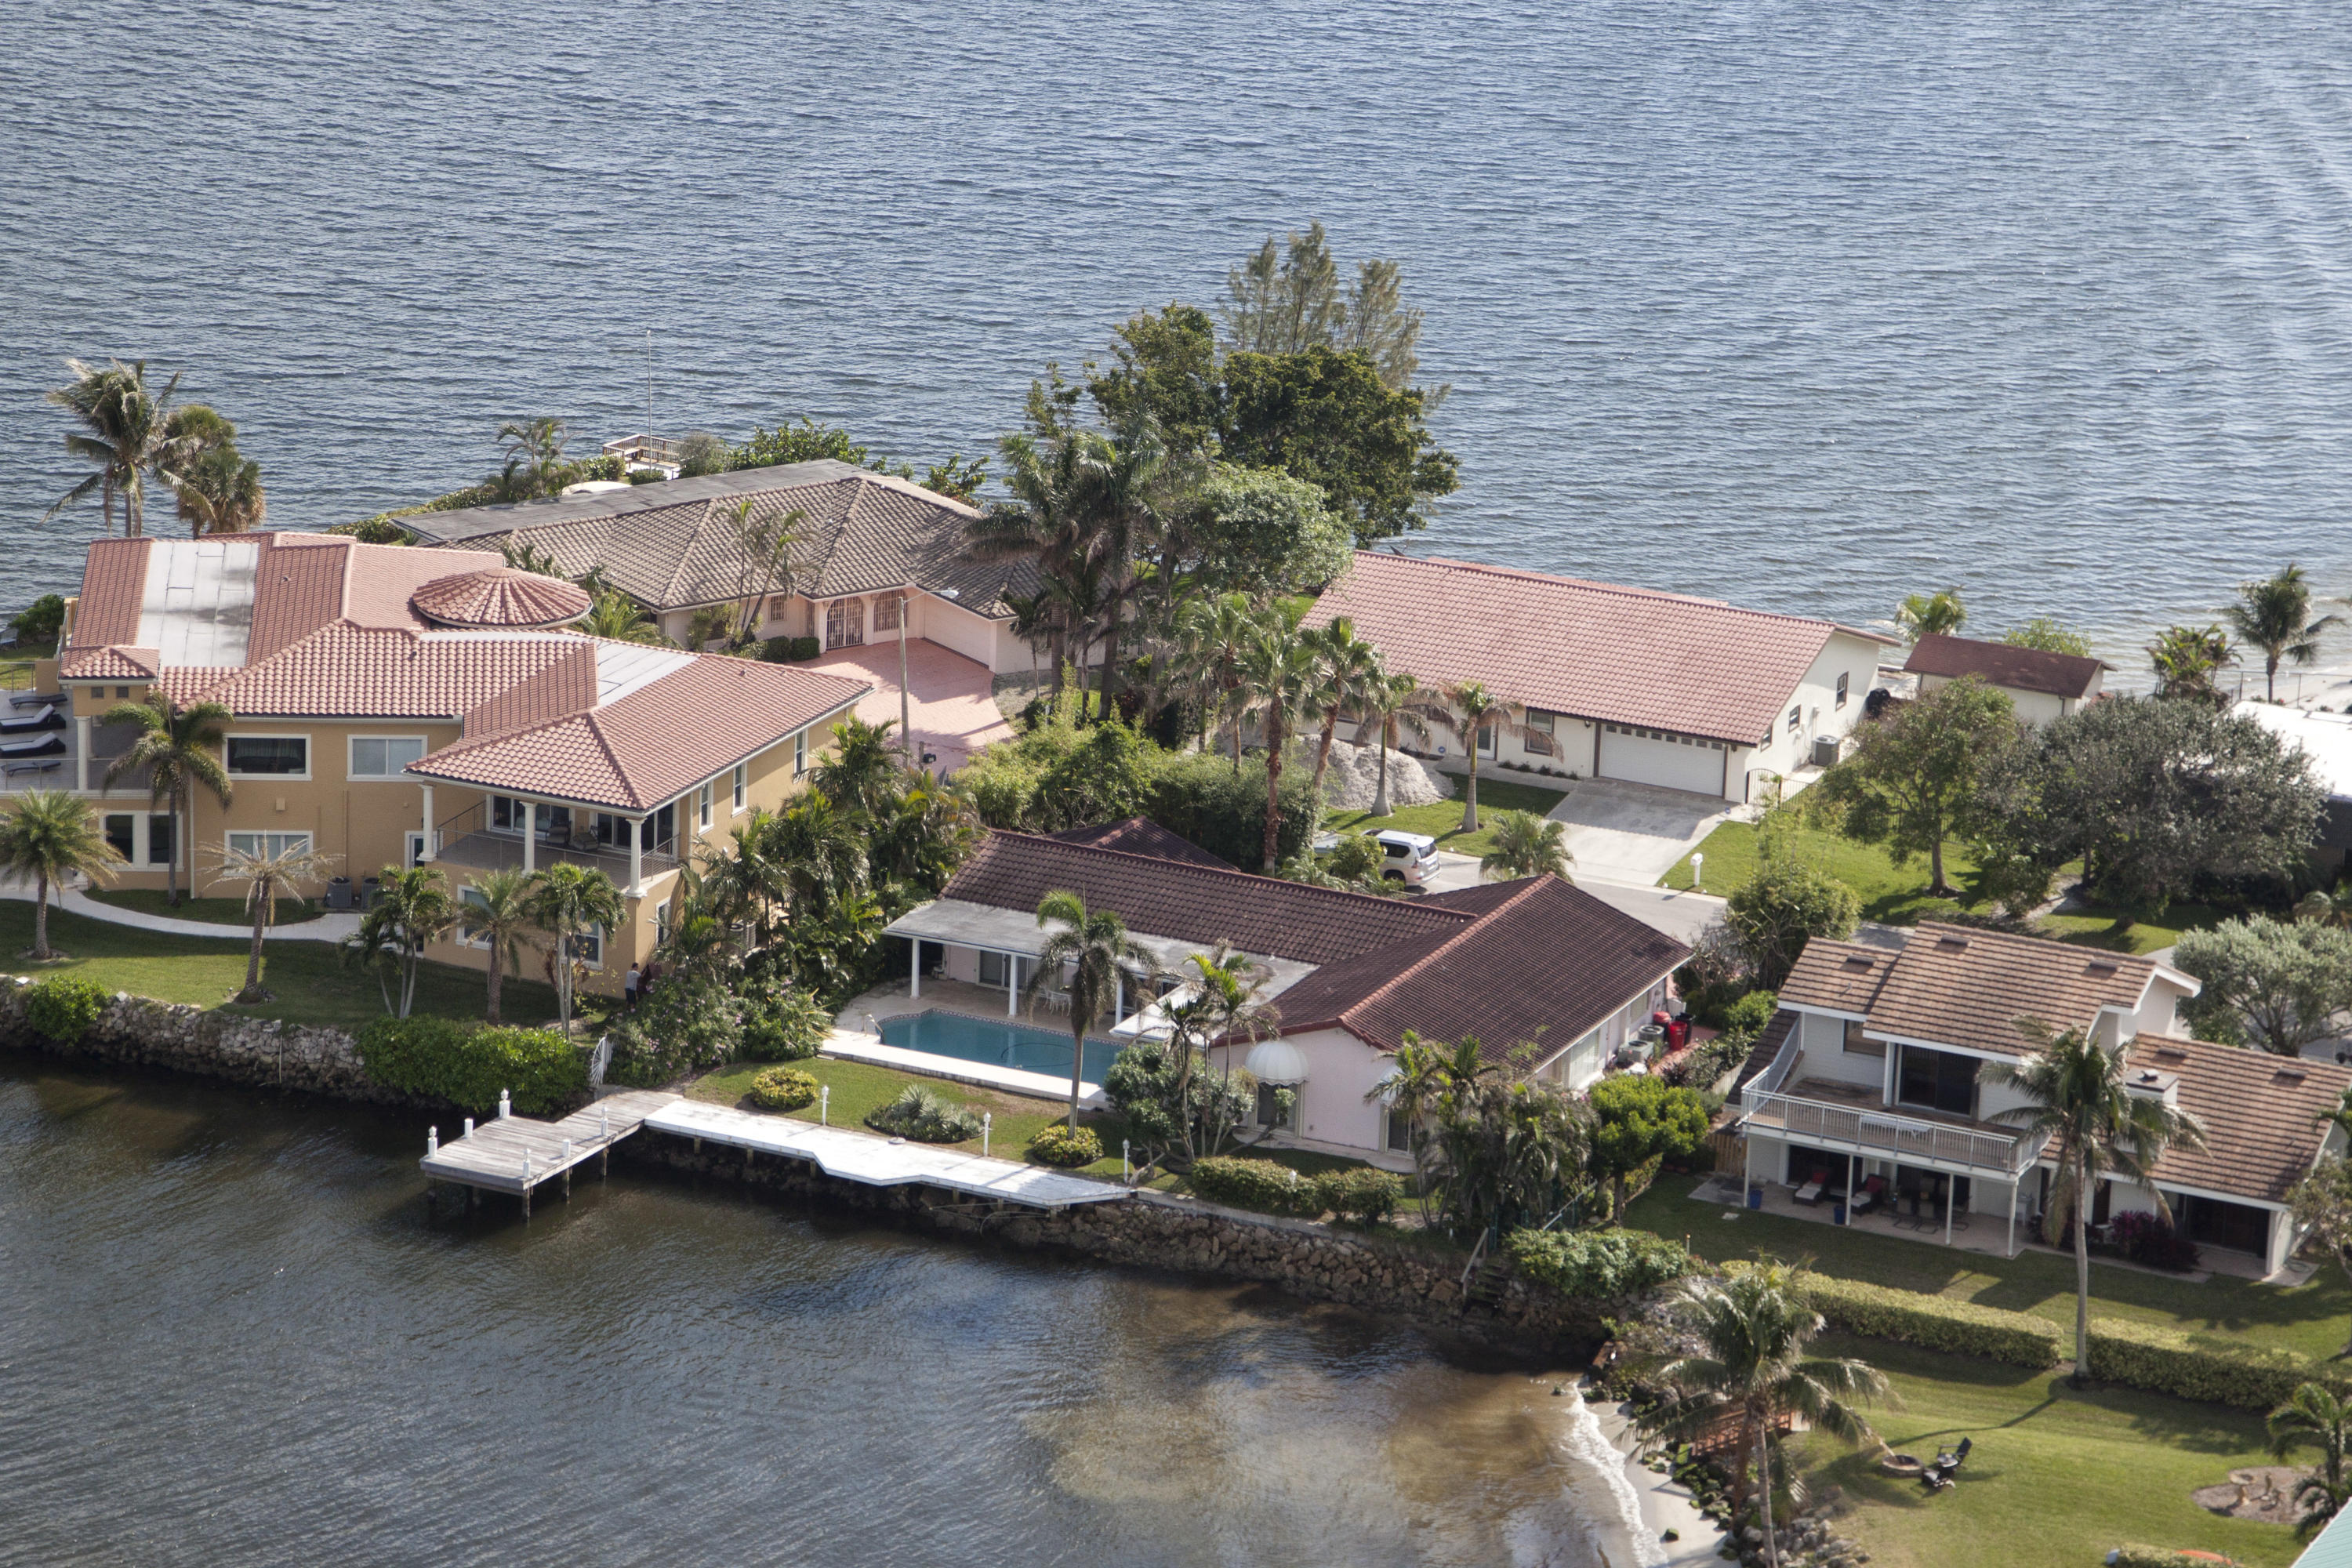 Home for sale in S/D OF 10-45-43, N 1/2 OF GOV LOT 2 IN Hypoluxo Florida